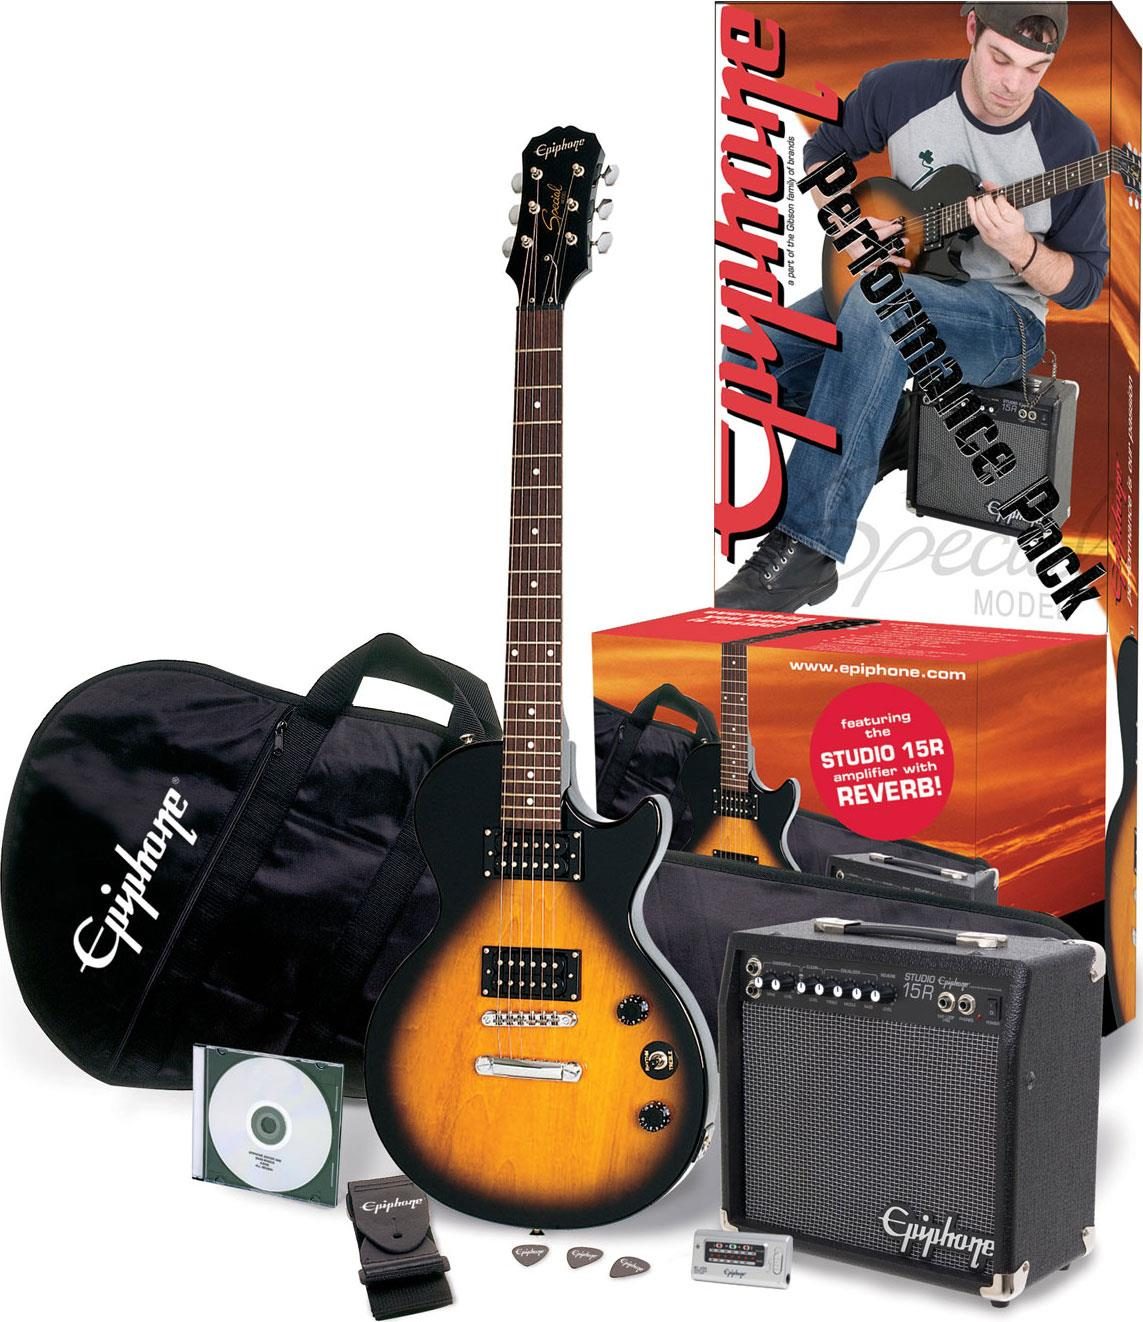 Epiphone riviera wiring diagram wiring diagram database epiphone riviera wiring diagram wiring jeep grand wagoneer wiring gibson les paul wiring diagram epiphone riviera wiring diagram cheapraybanclubmaster Images